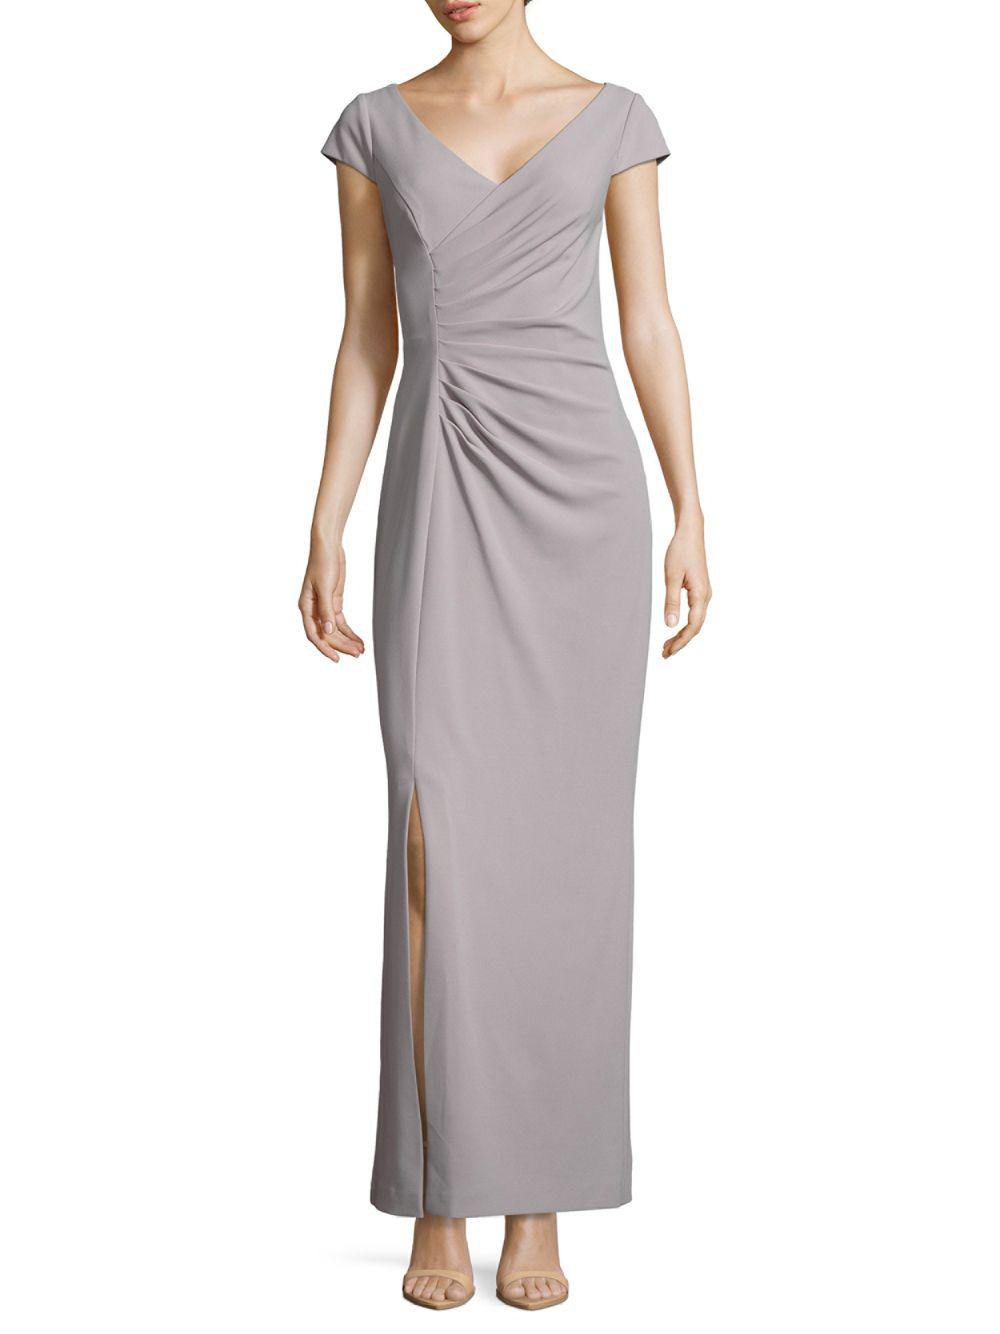 Cross Front Gray Gown